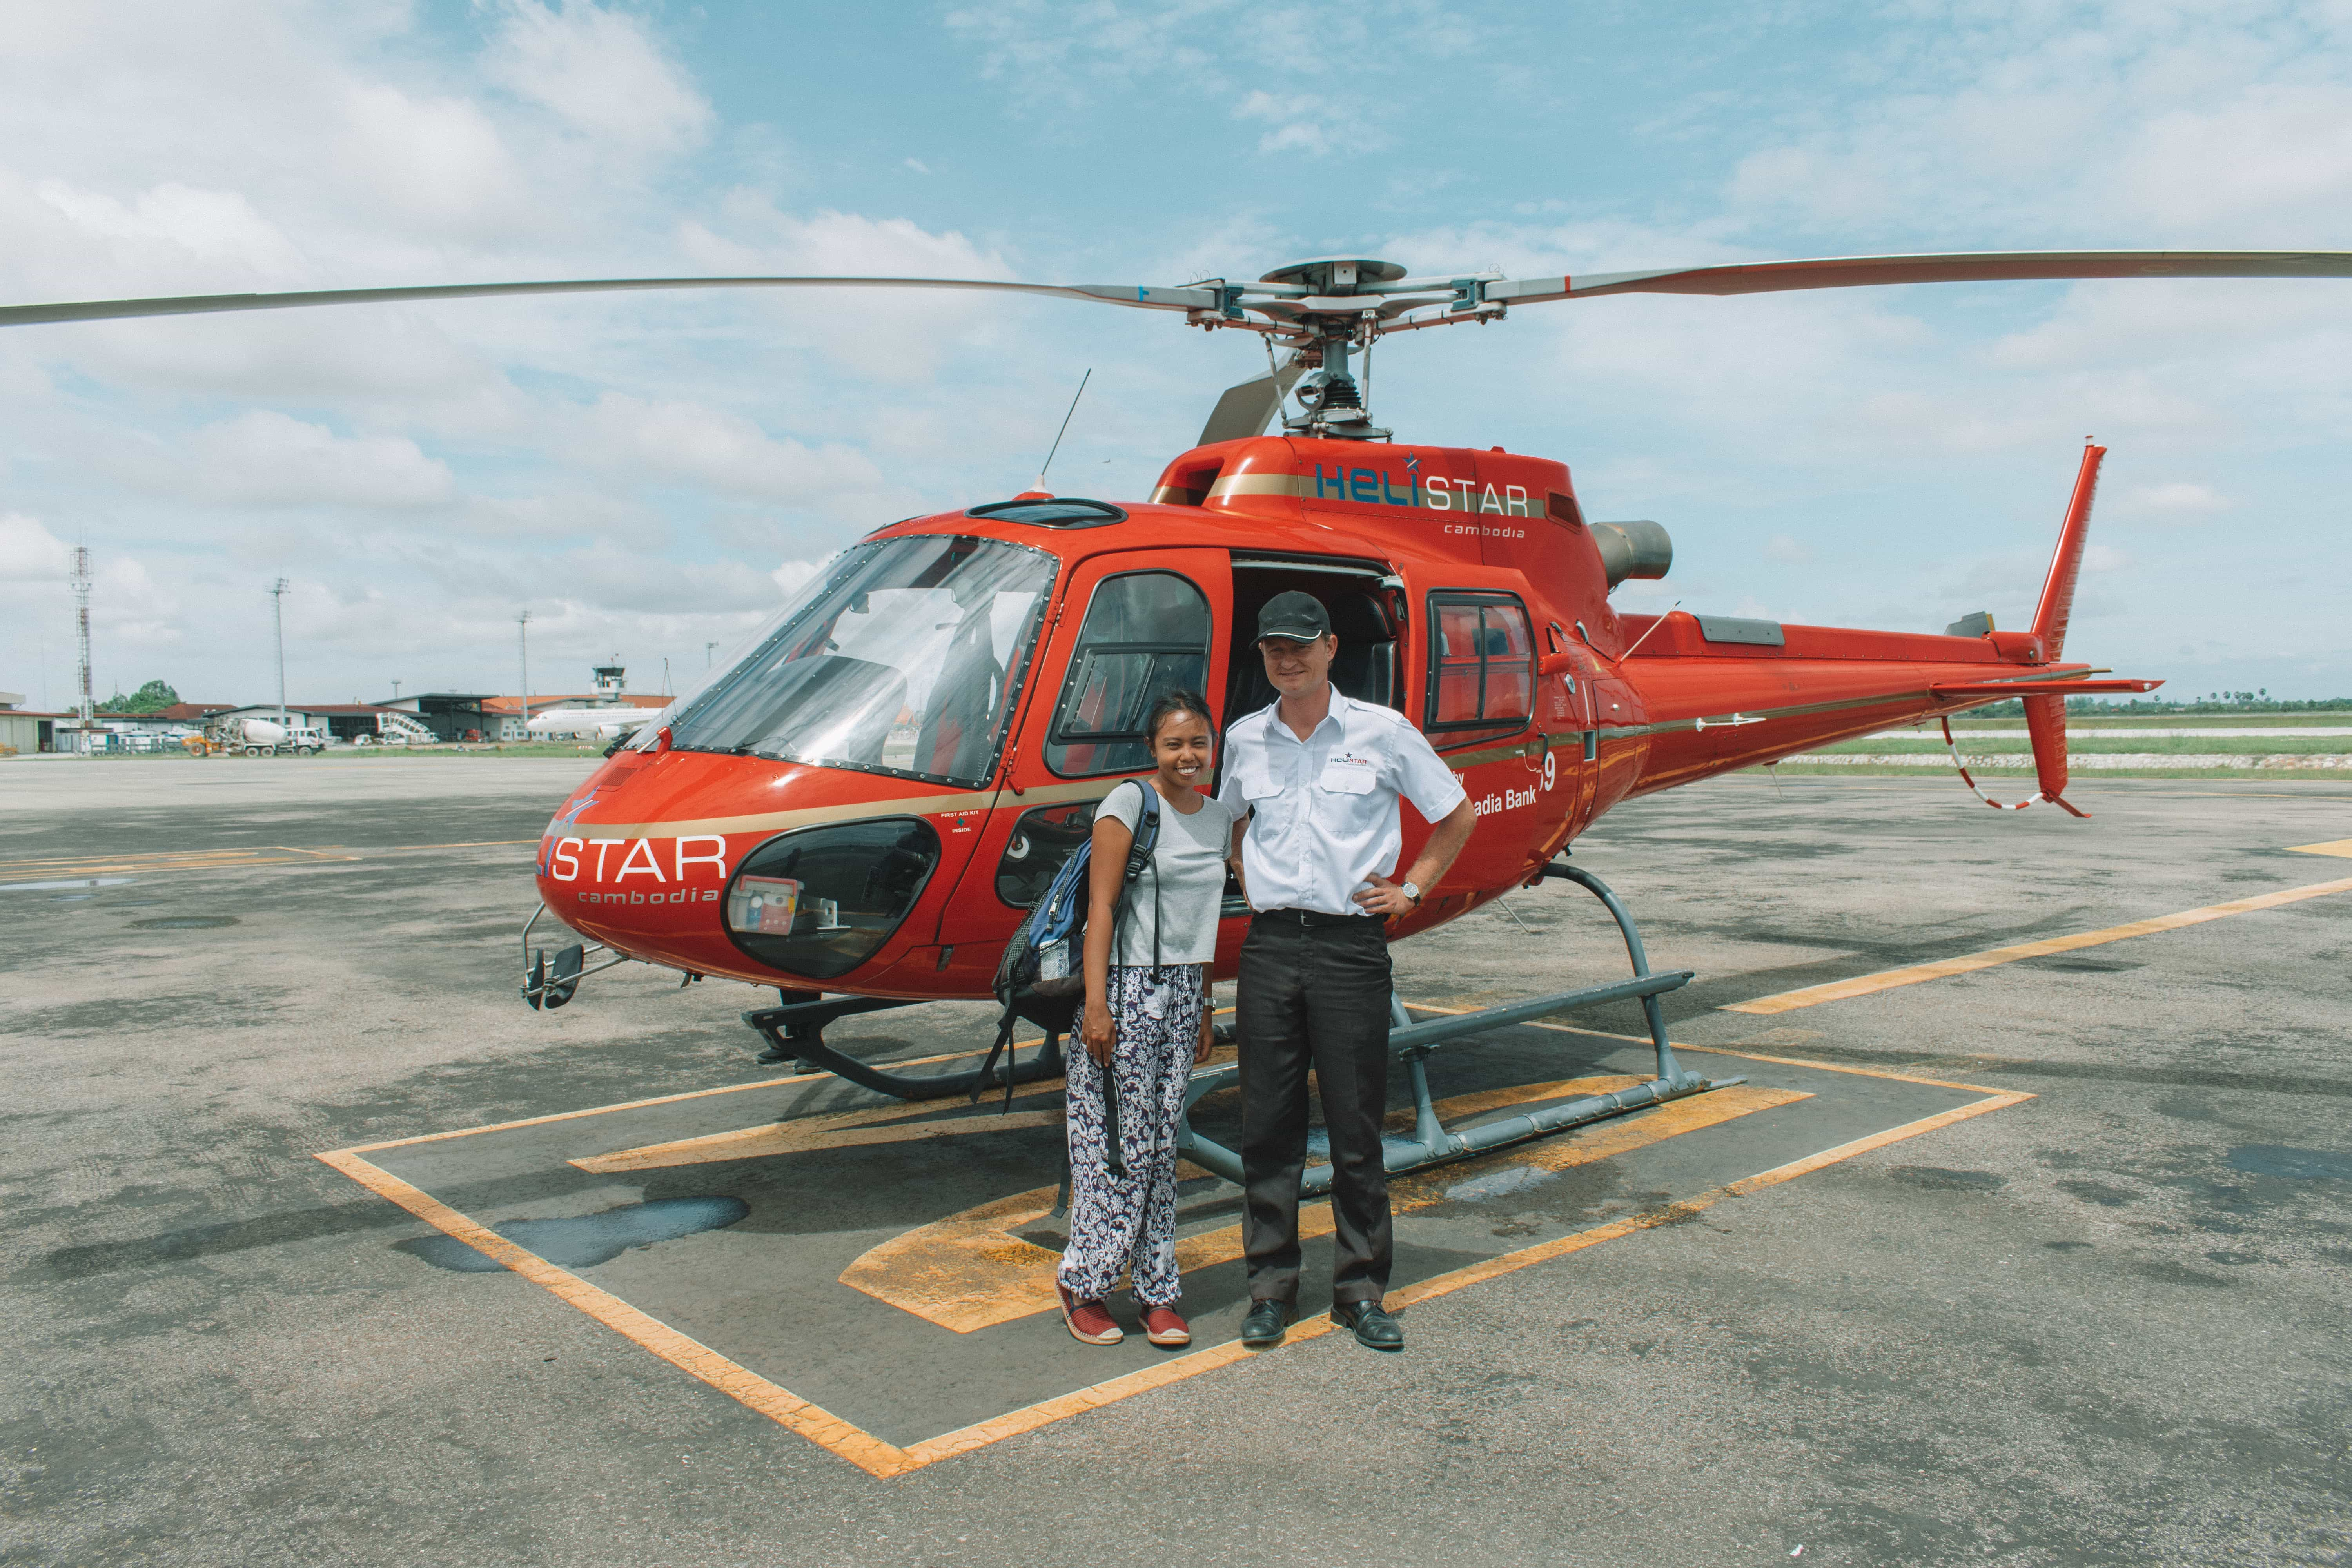 a helicopter scenic flight around Siem Reap with the captain